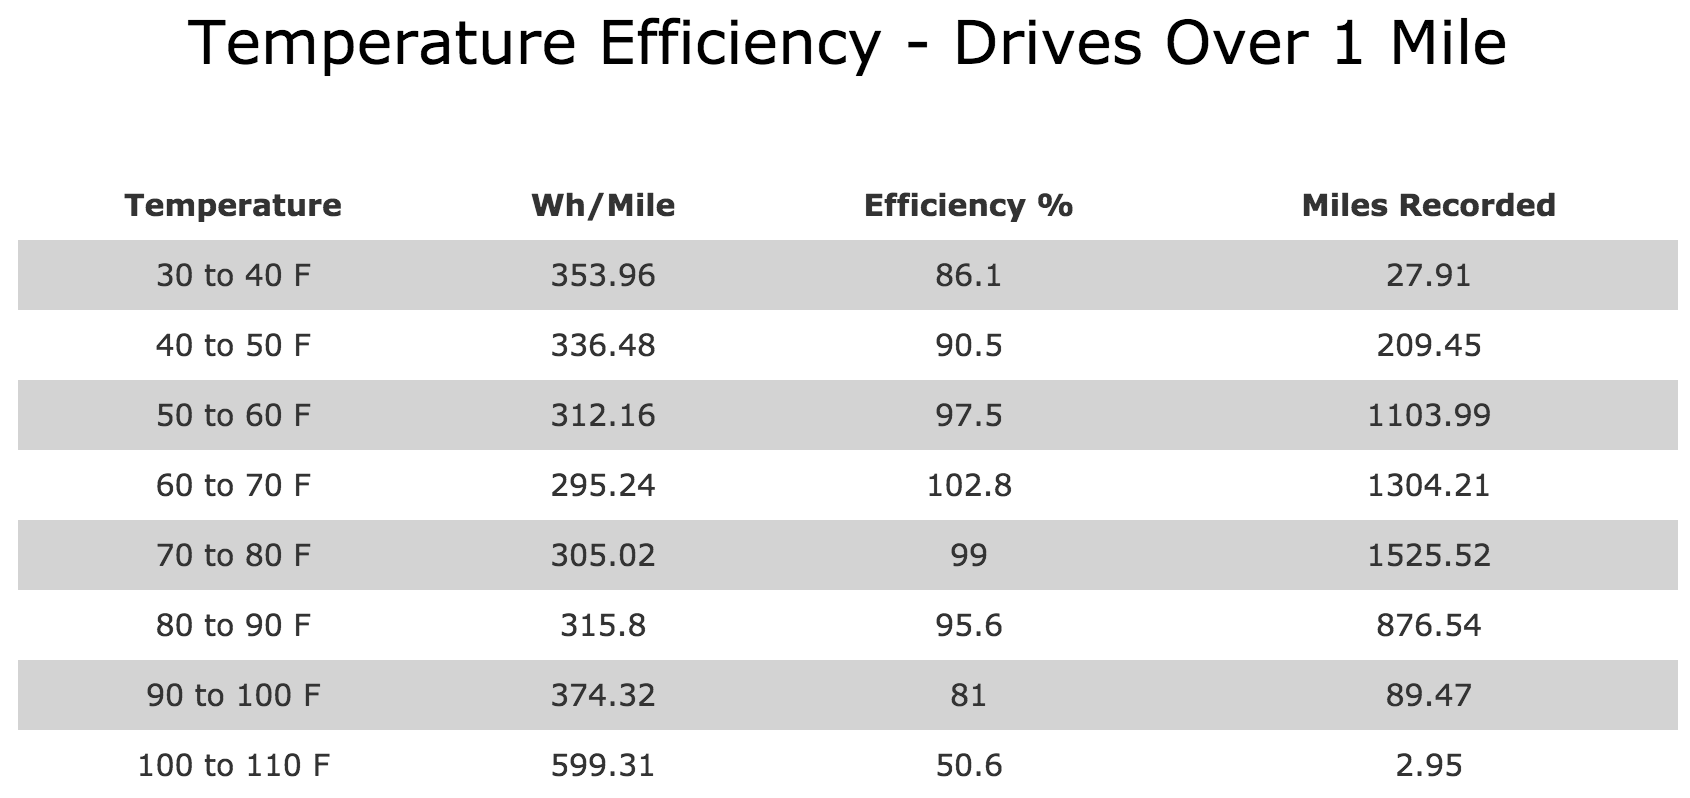 TemperatureEfficiency-DrivesOver1mile.png